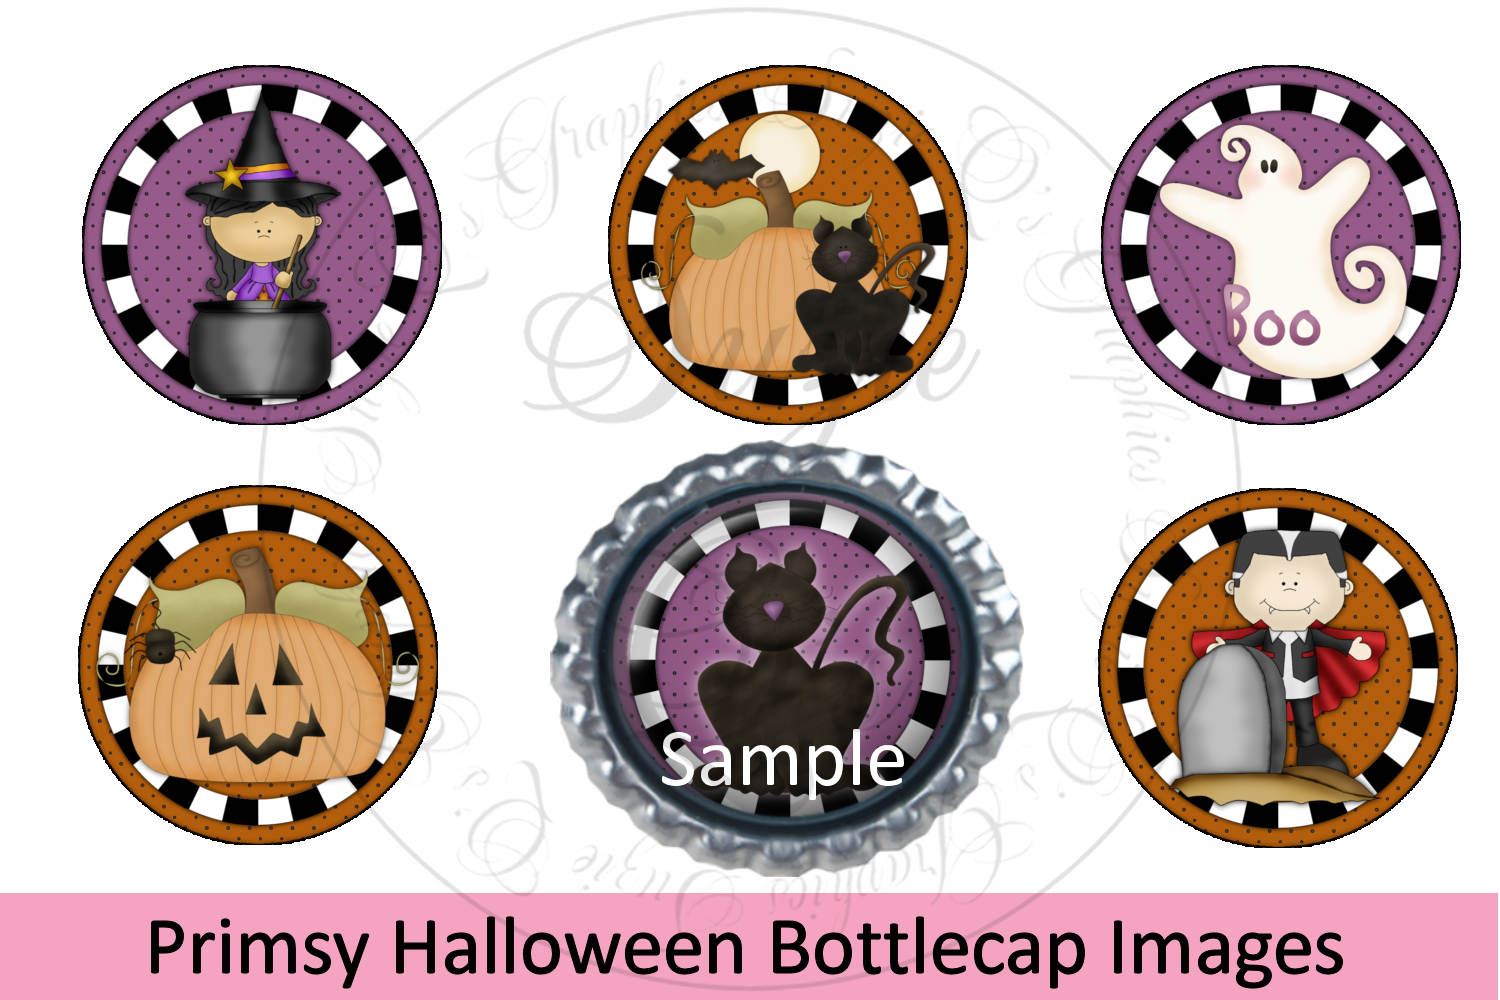 Primsy Halloween Bottlecap Images, Labels example image 1